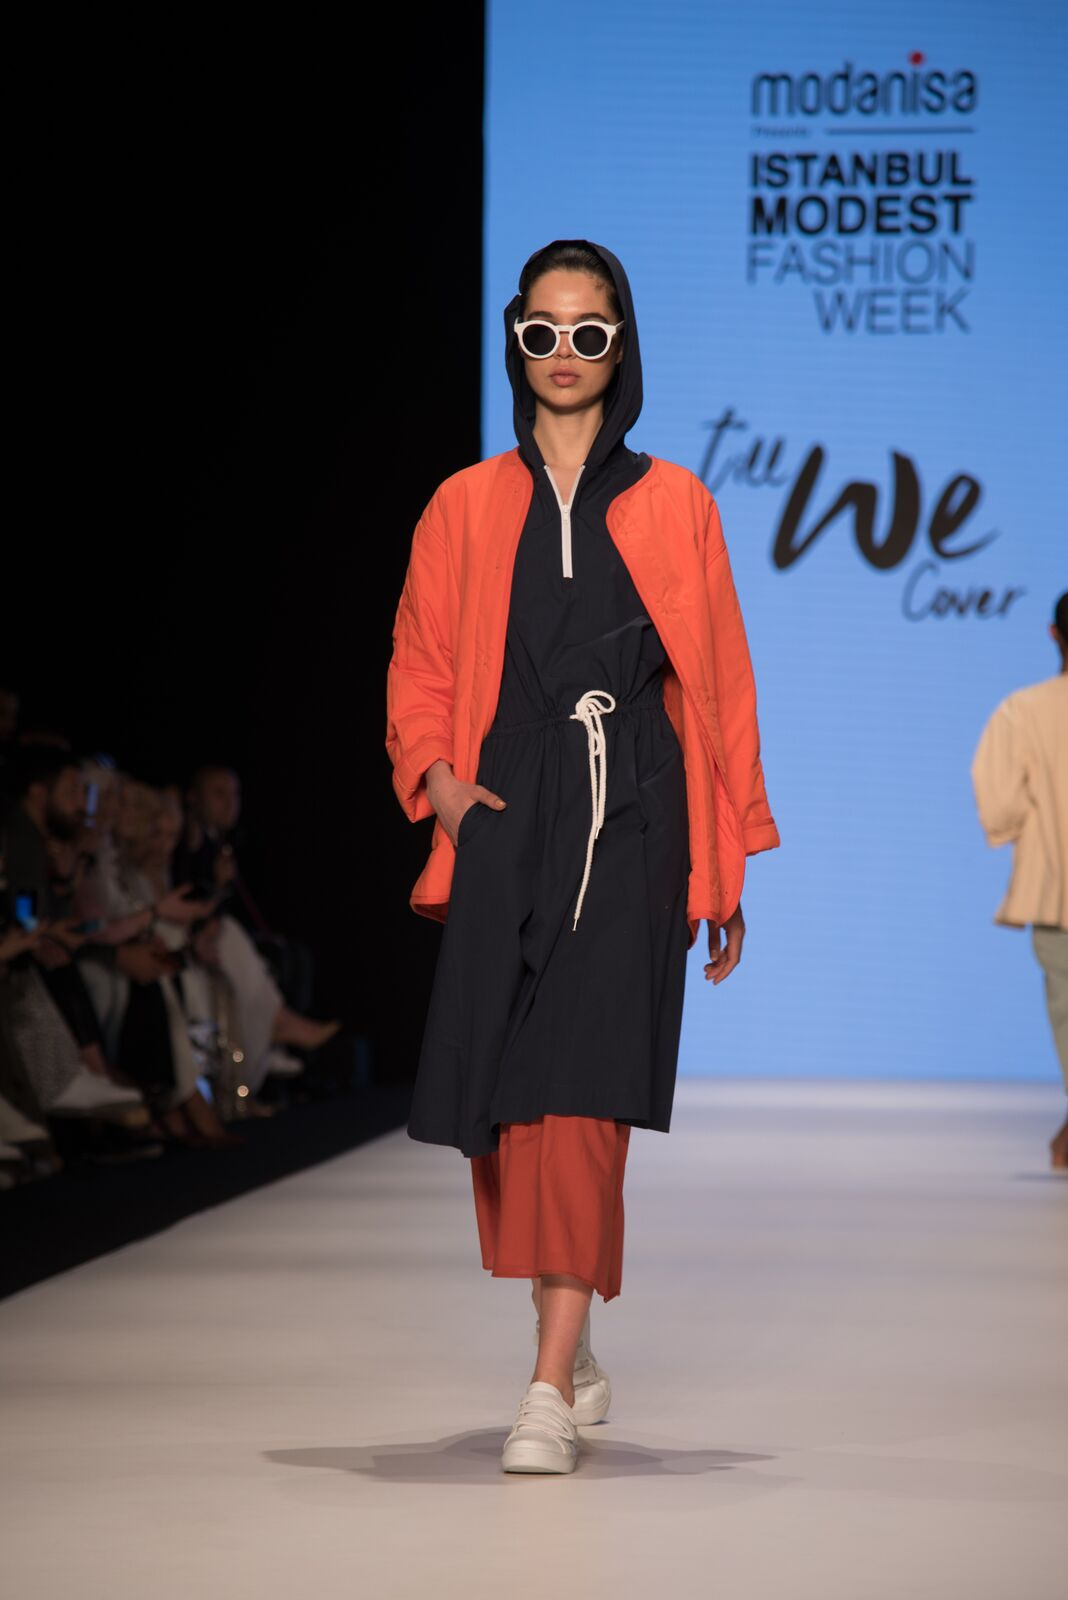 Till we cover at istanbul modest fashion week 2019 day 2